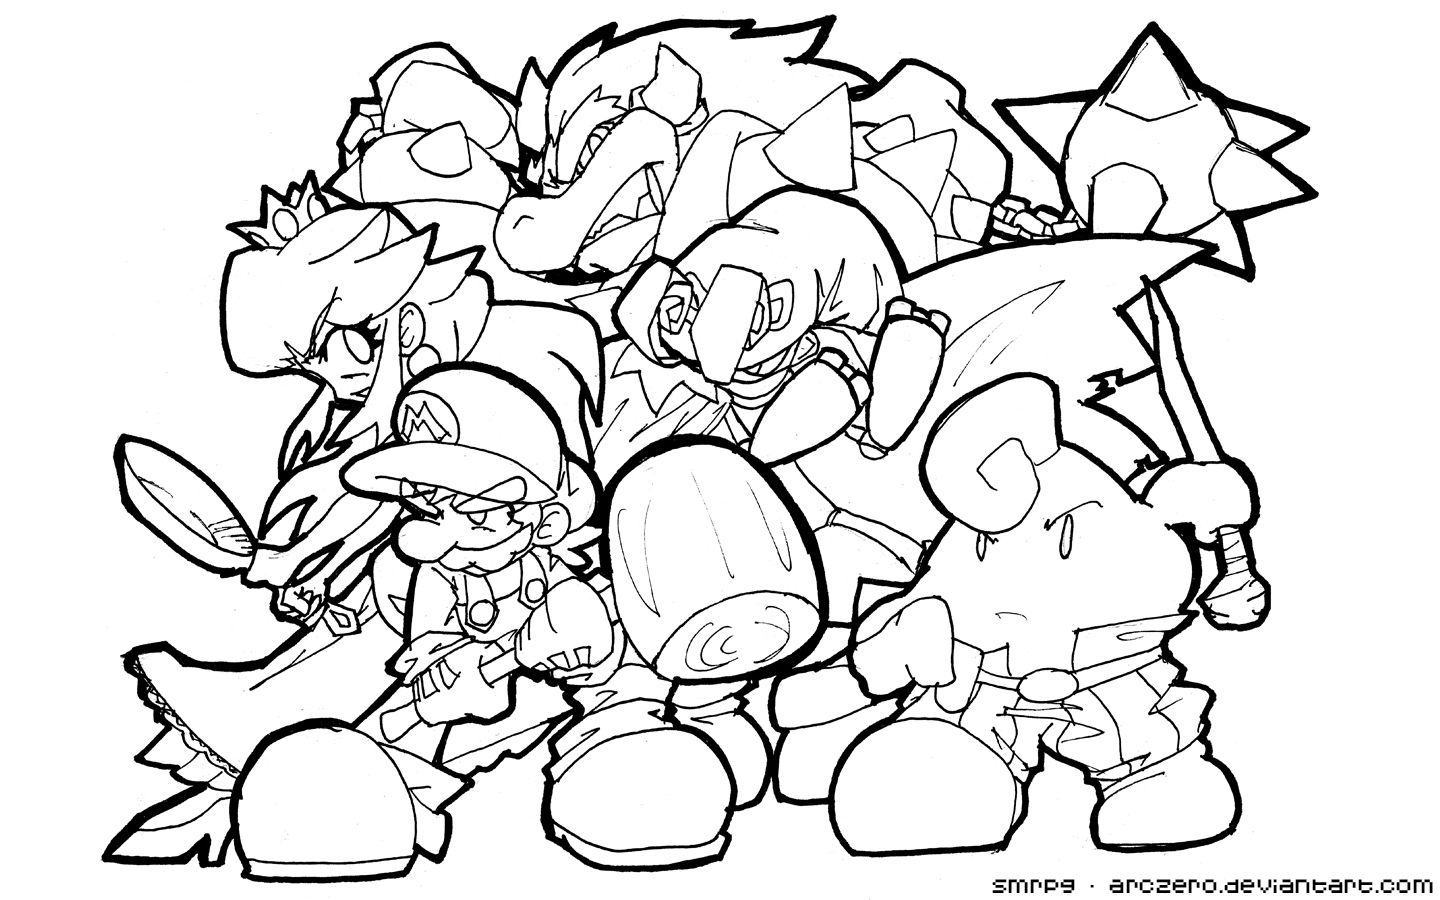 Coloring Pages Super Smash Brothers Coloring Pages super smash bros coloring pages az 10 pics of mario page characters